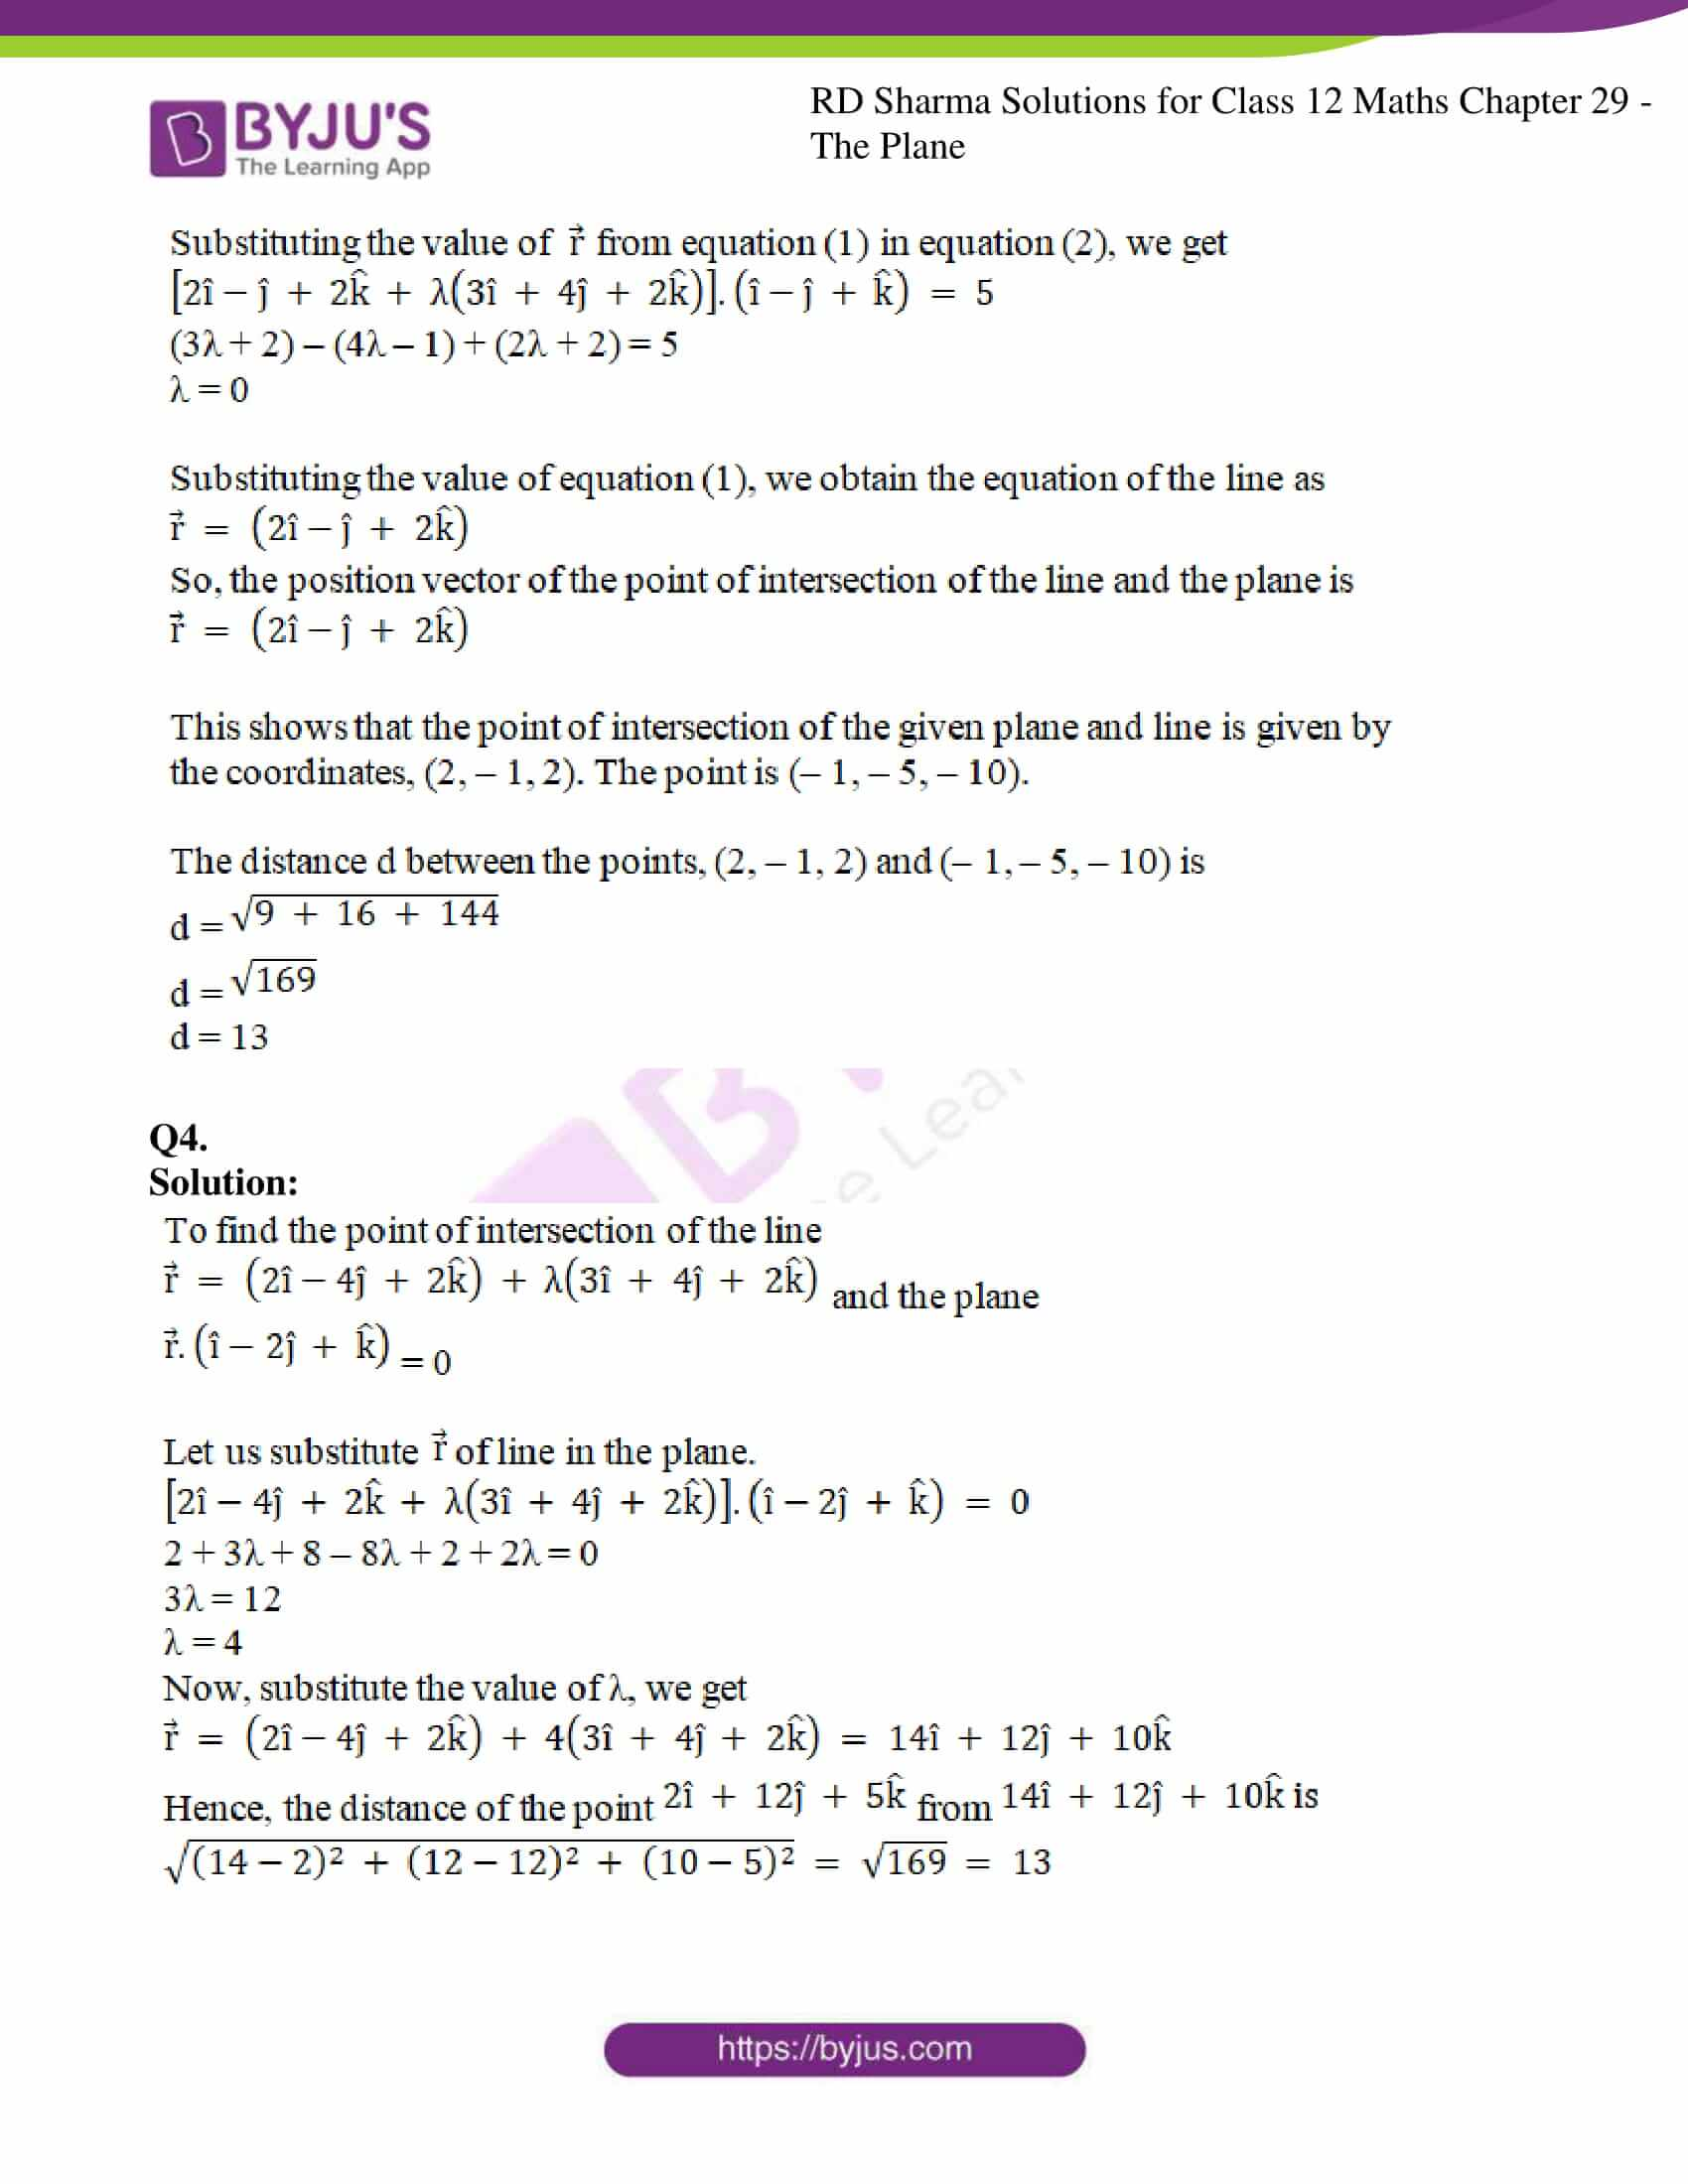 rd sharma solutions for class 12 maths chapter 29 ex 12 3